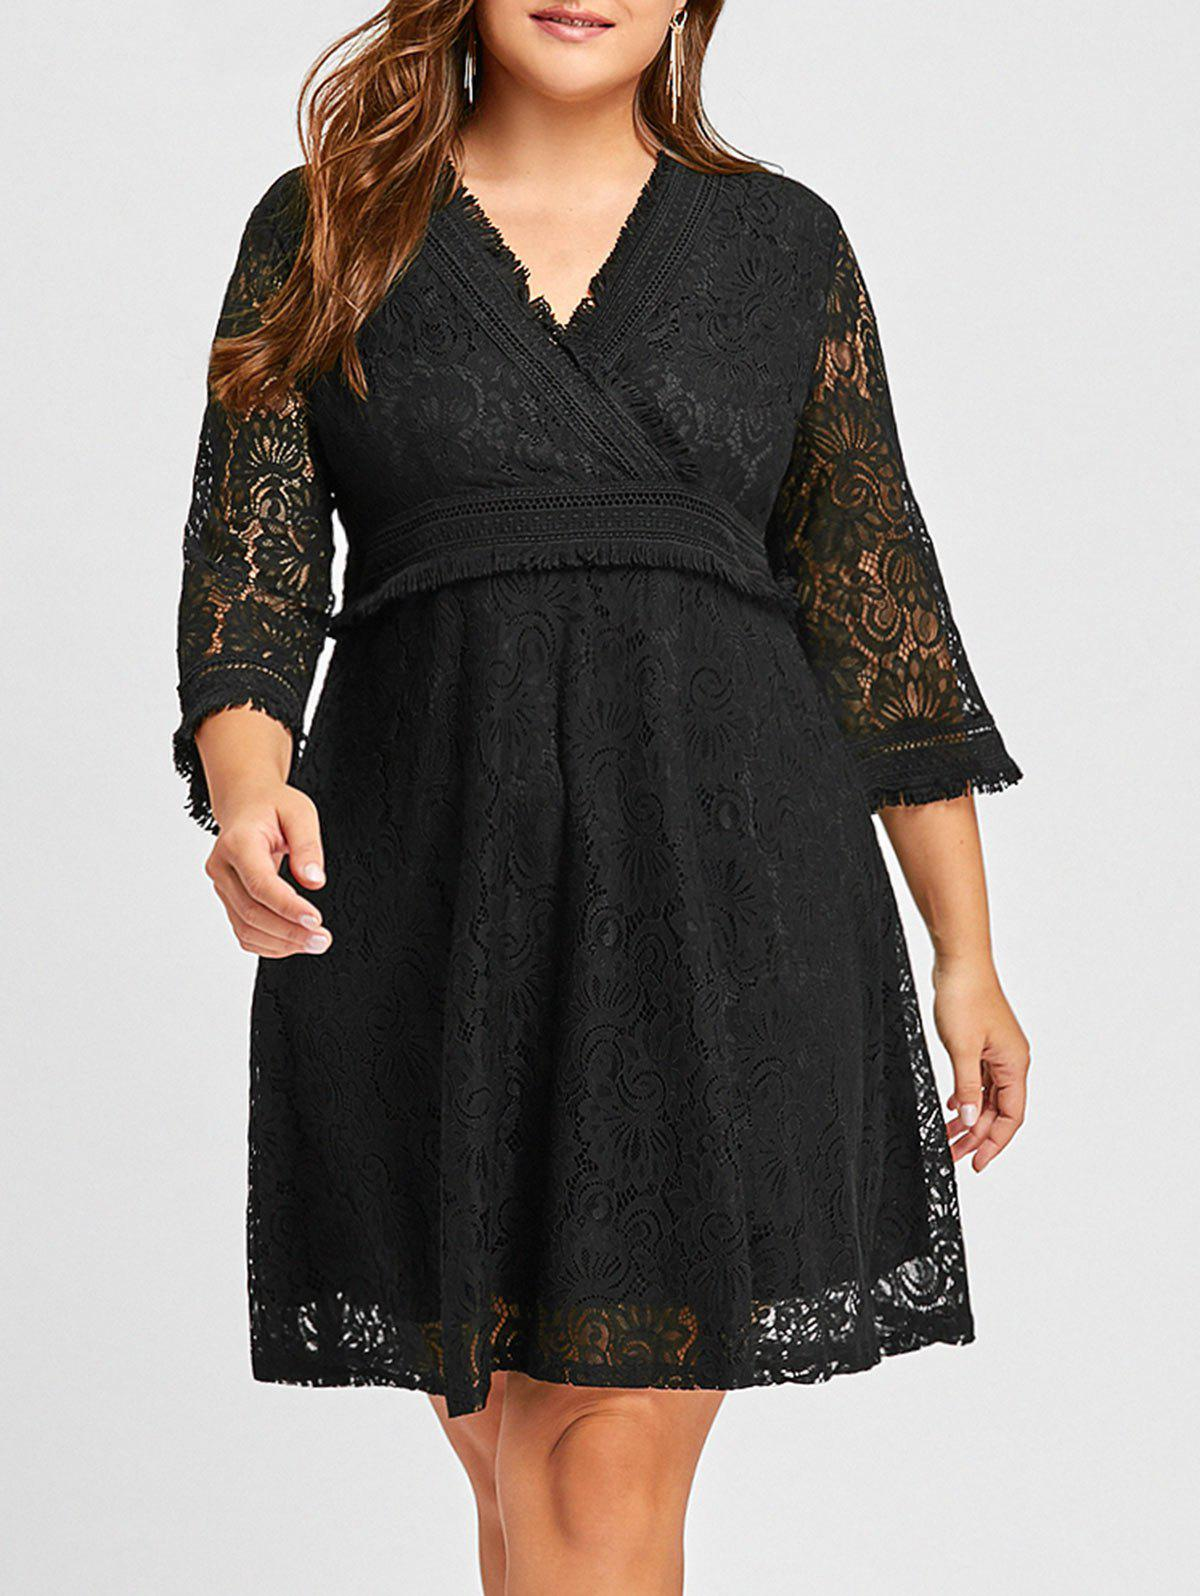 Plus Size Fringed Floral Lace Surplice DressWOMEN<br><br>Size: 2XL; Color: BLACK; Style: Casual; Material: Polyester; Silhouette: A-Line; Dresses Length: Knee-Length; Neckline: V-Neck; Sleeve Length: 3/4 Length Sleeves; Embellishment: Lace; Pattern Type: Solid Color; With Belt: No; Season: Fall,Spring; Weight: 0.4300kg; Package Contents: 1 x Dress;